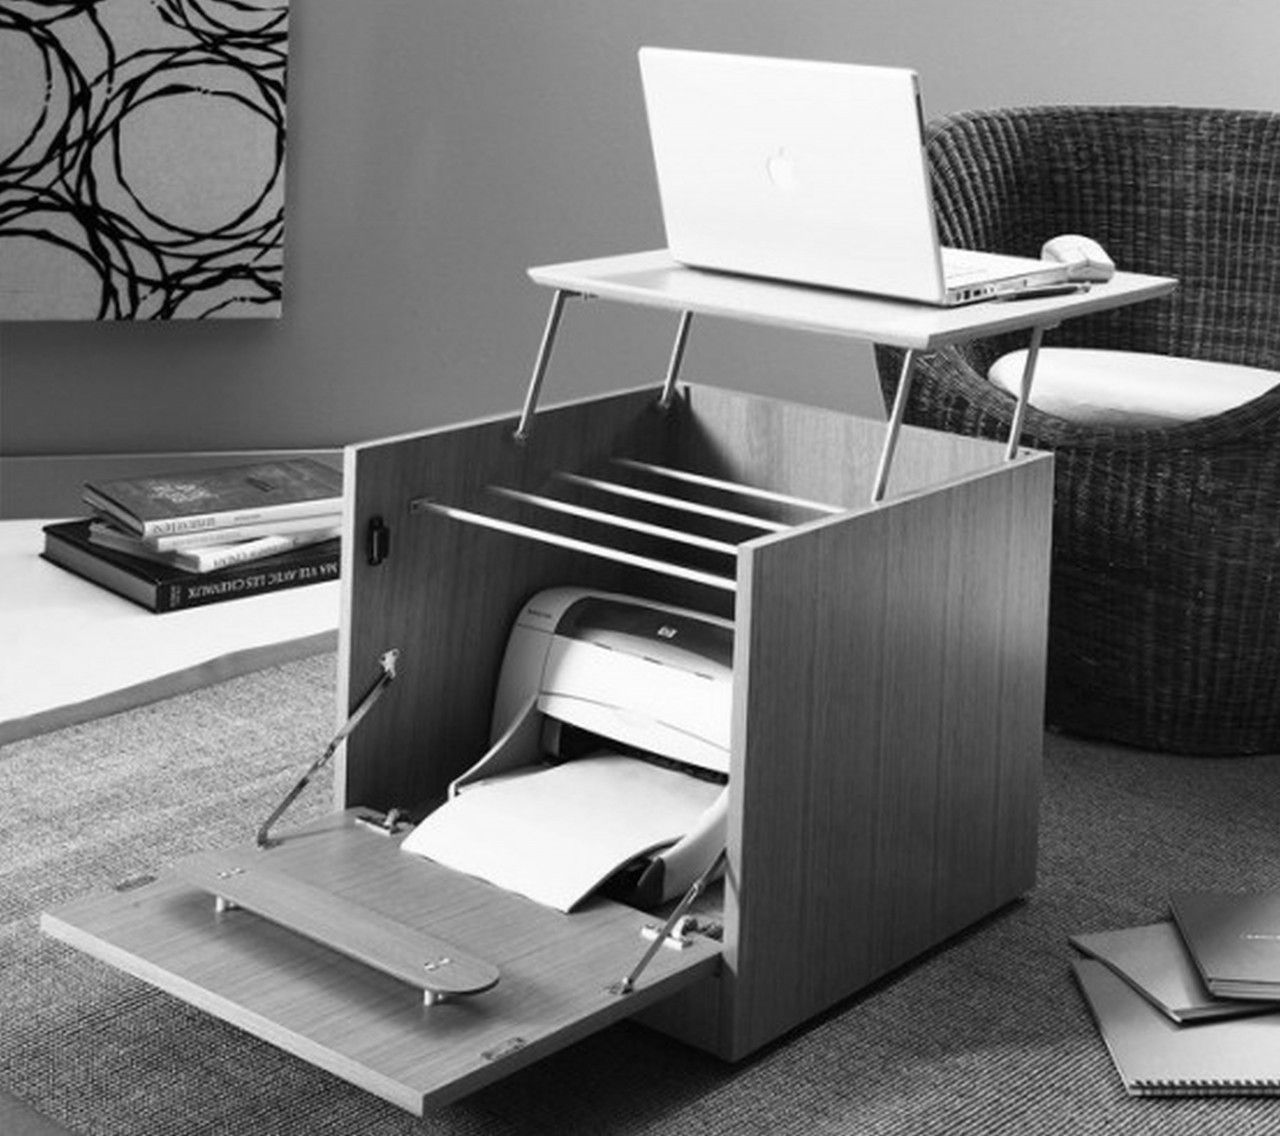 side table that doubles as a laptop / printer hideaway desk . very